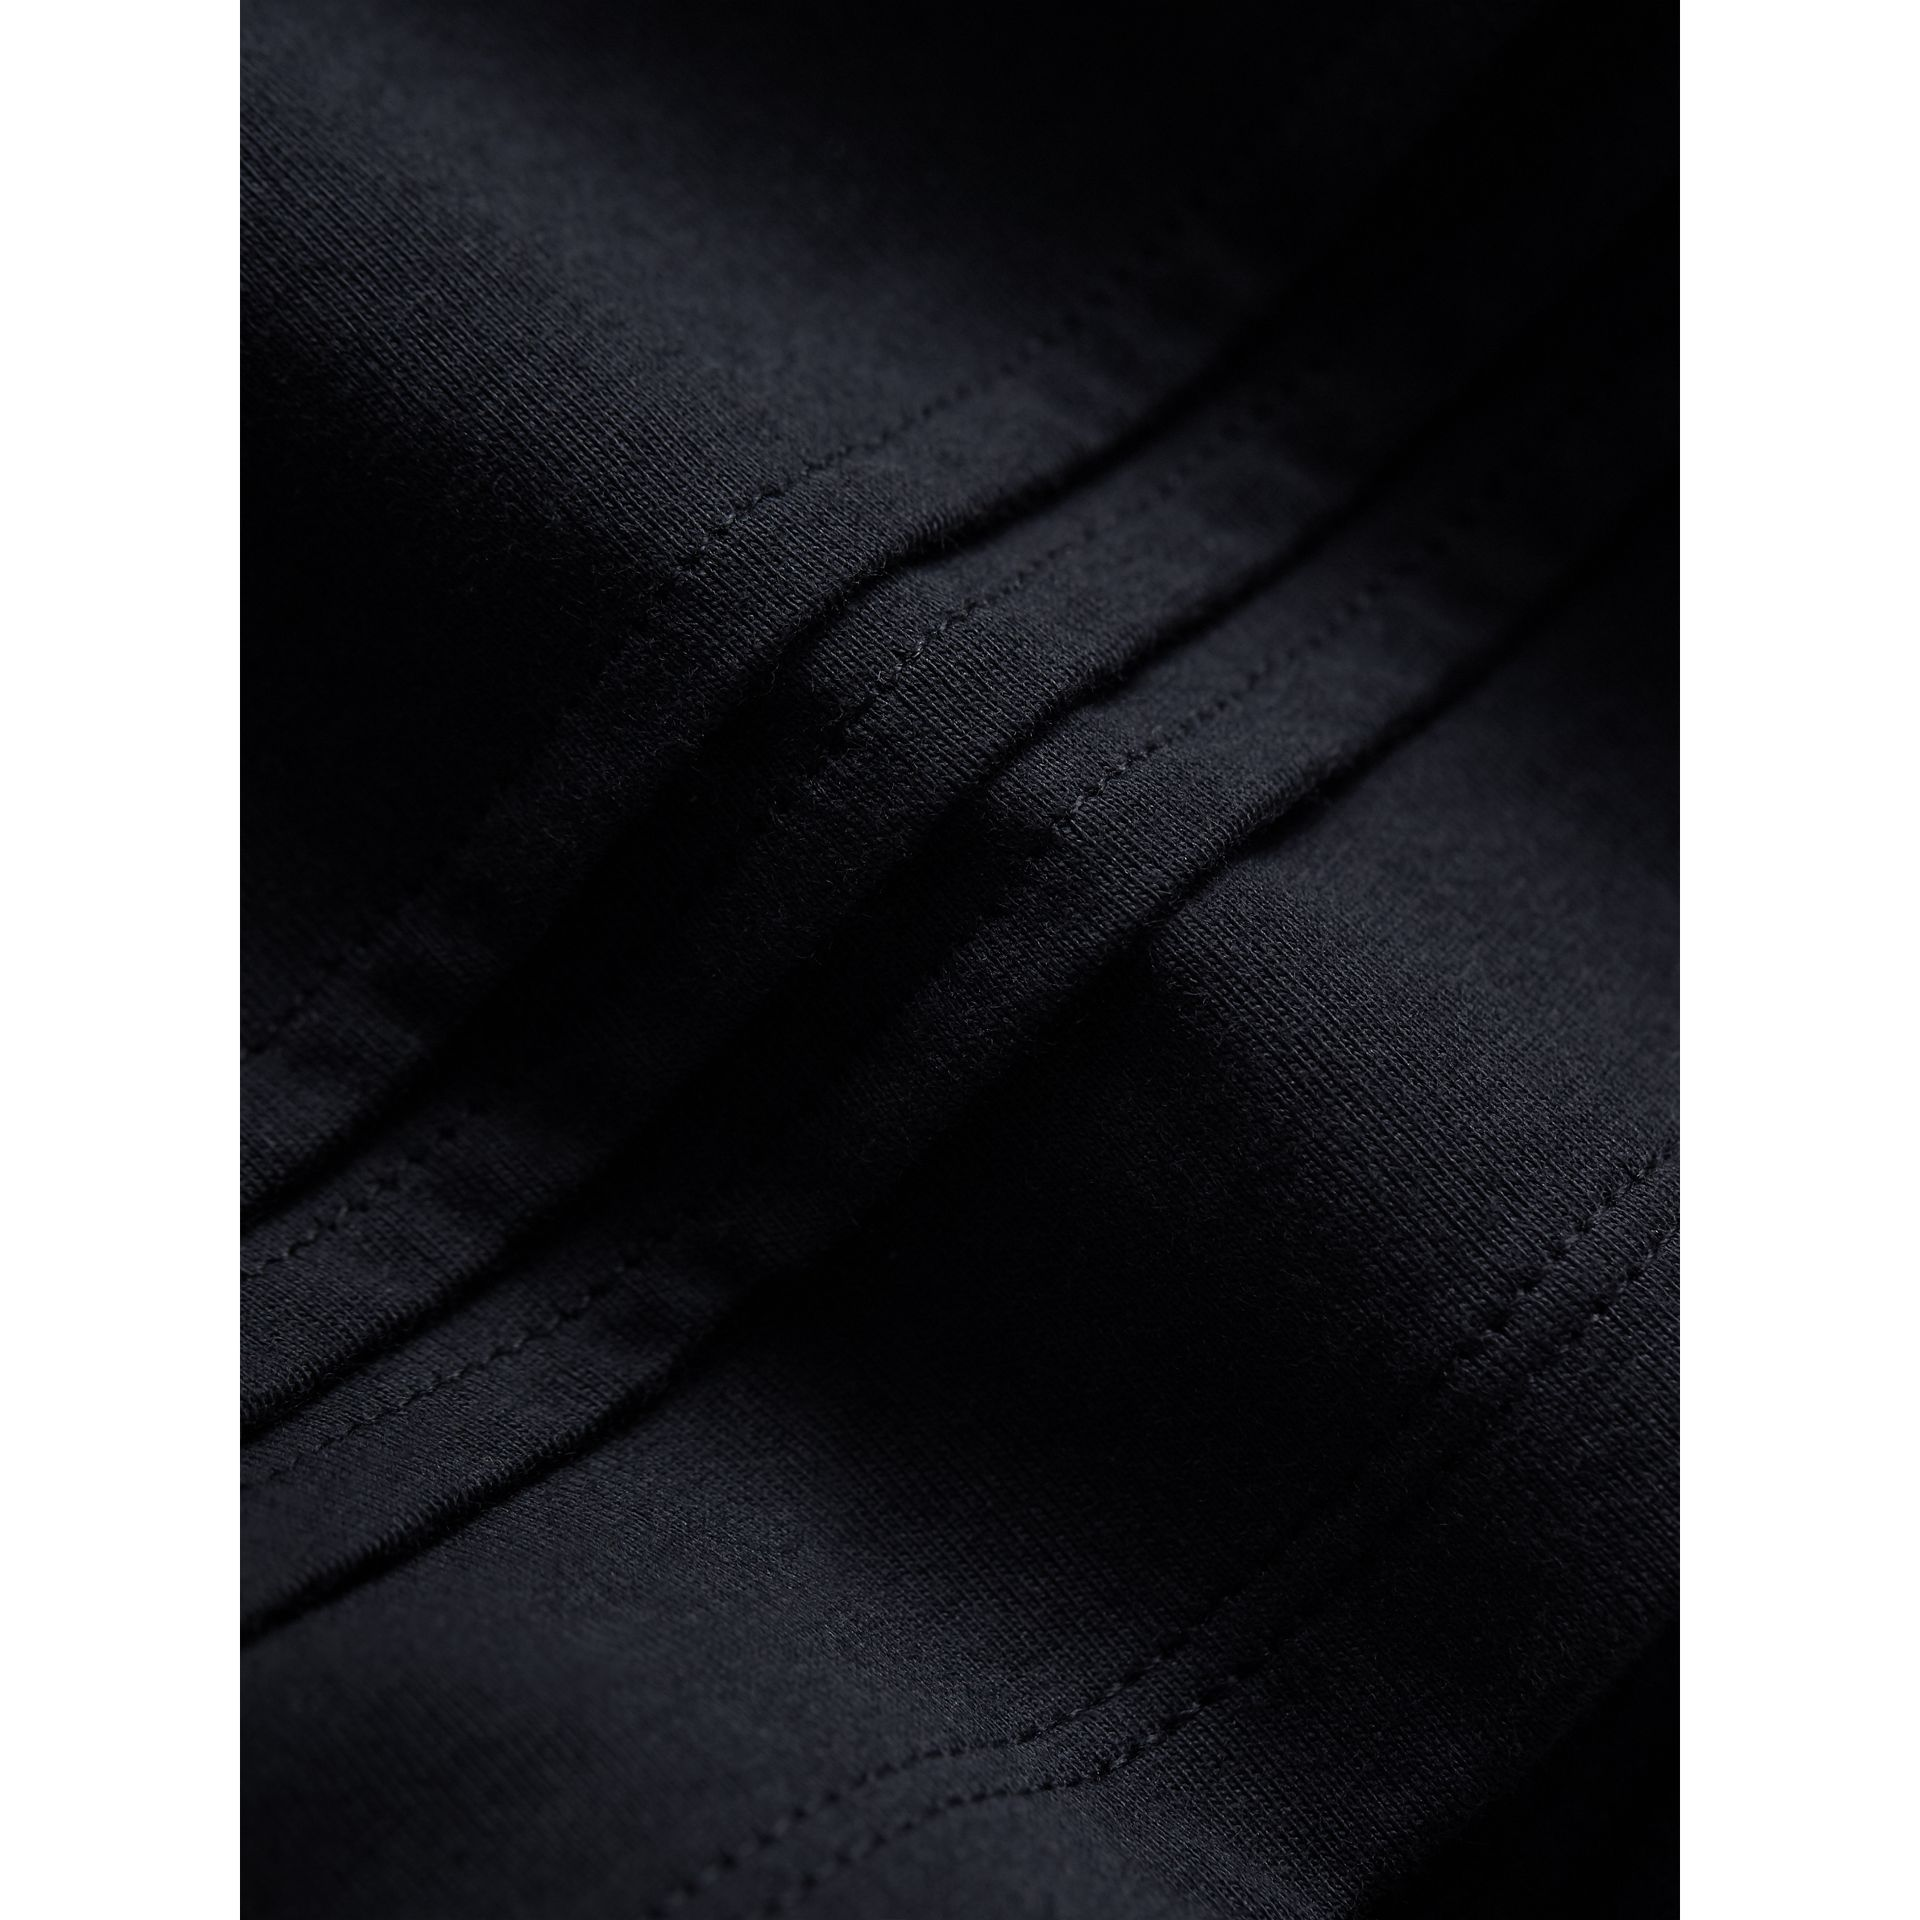 Pleat and Check Detail Cotton Top in Navy | Burberry United States - gallery image 1